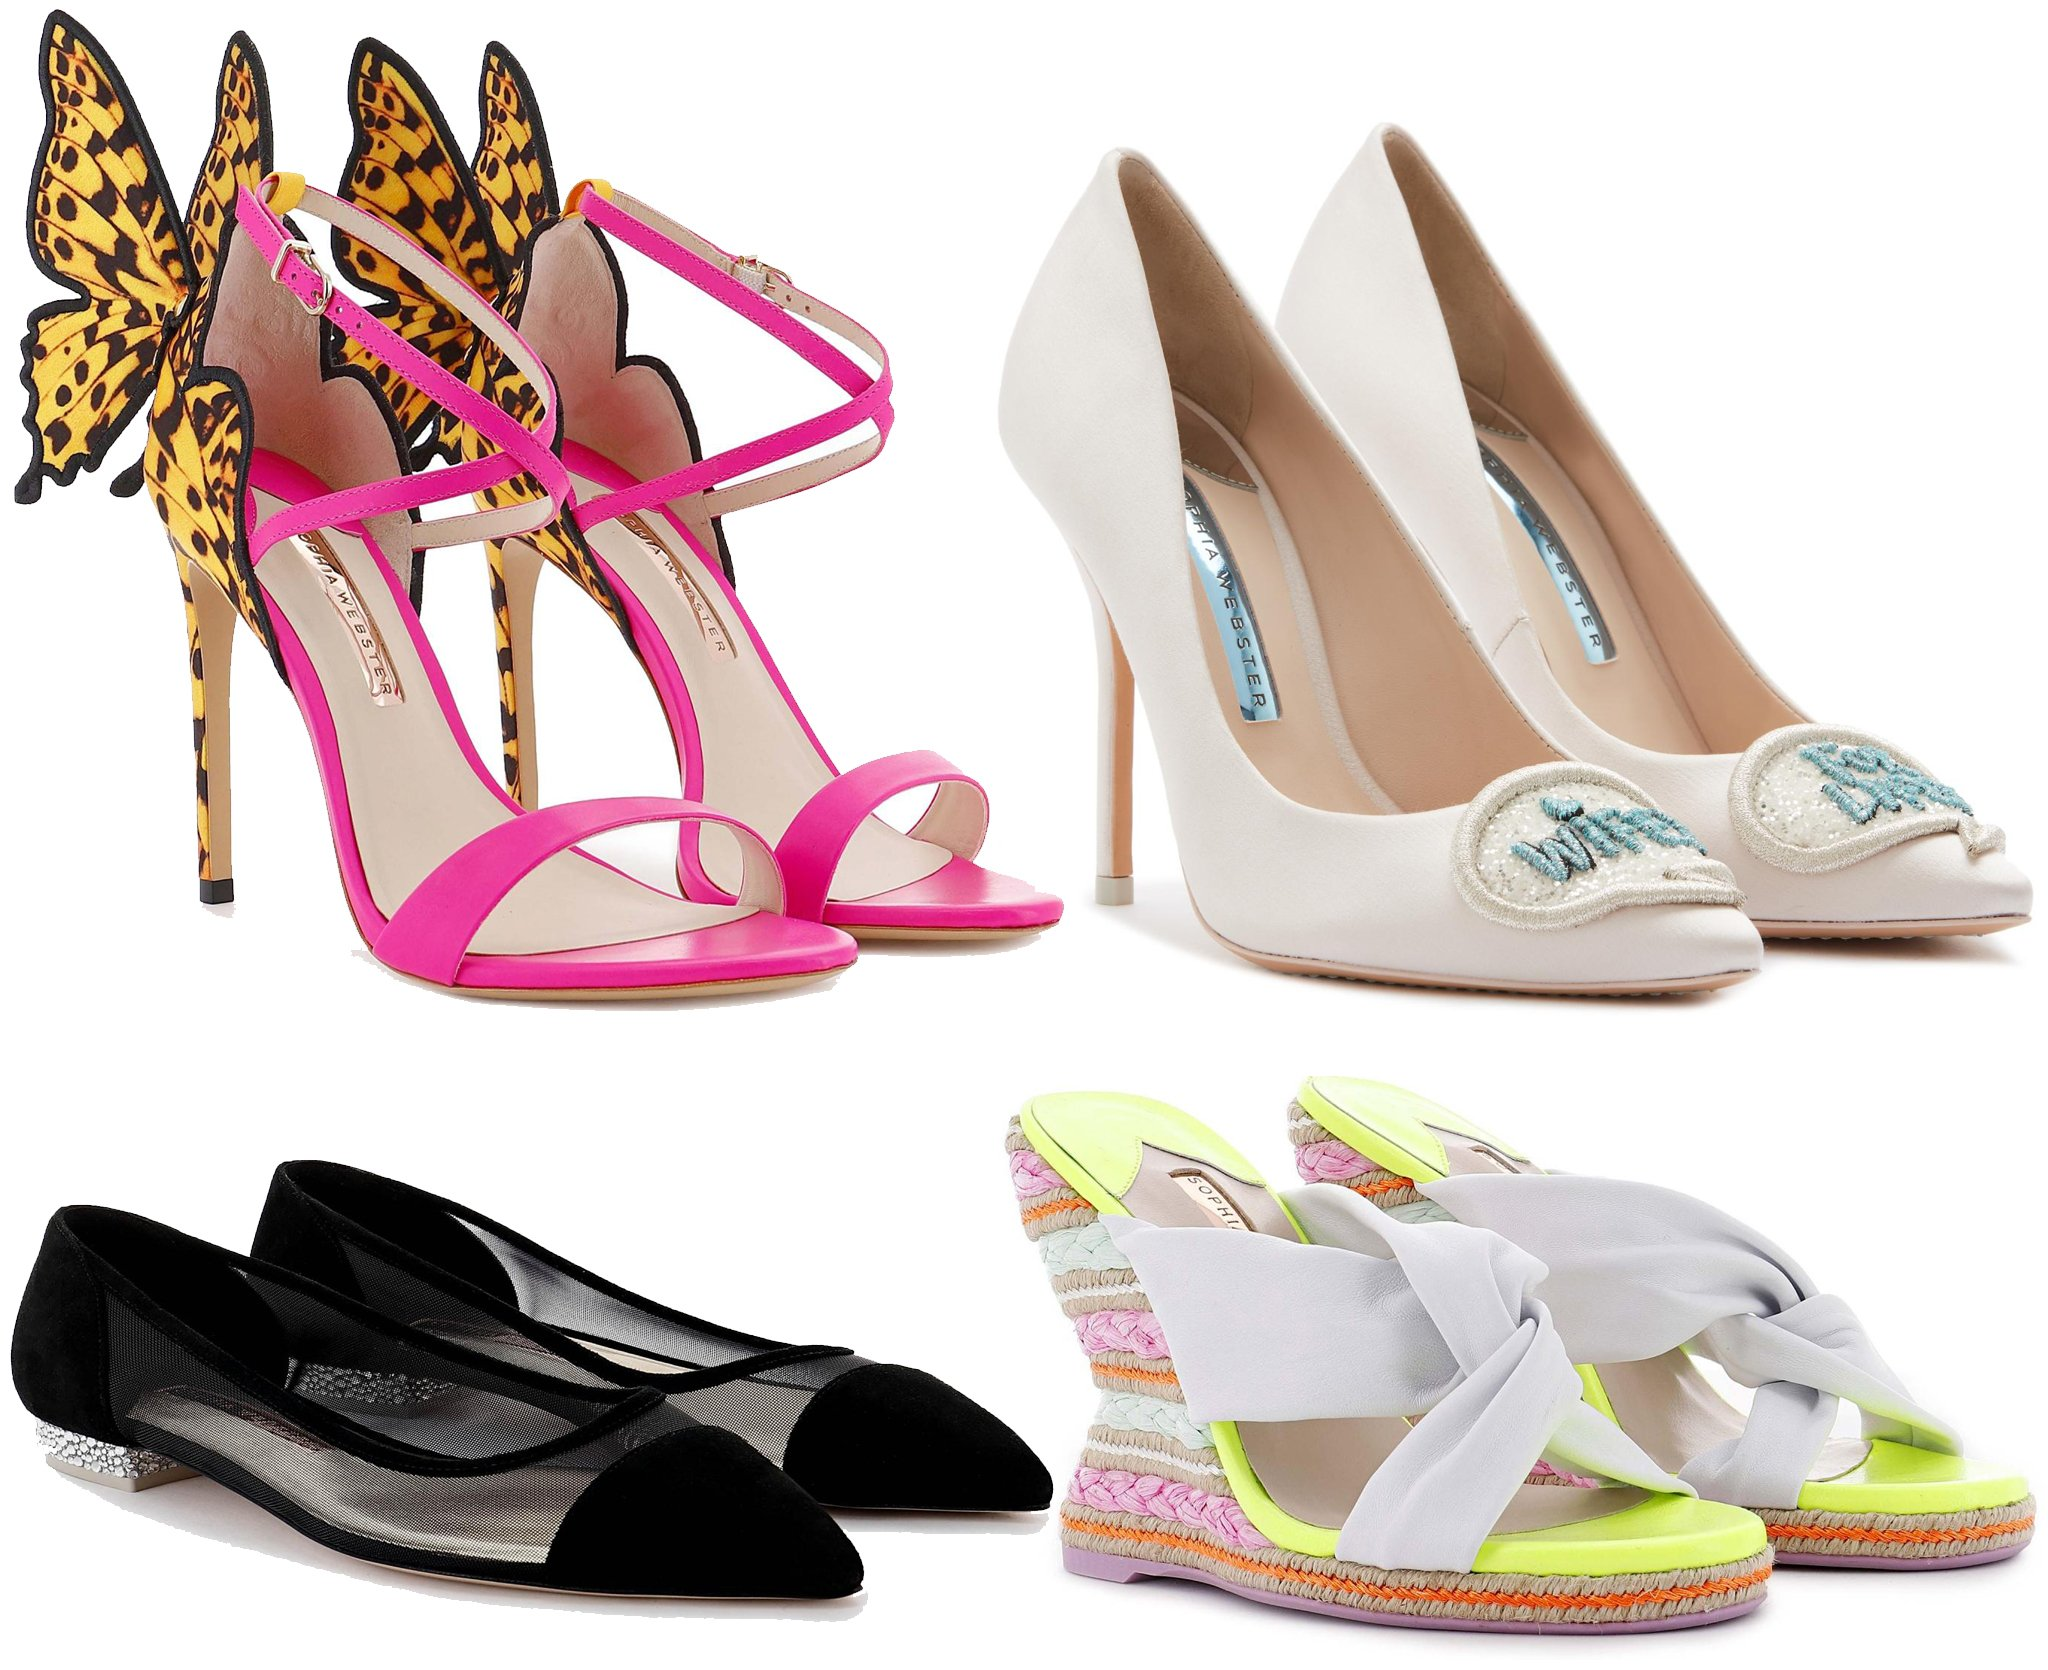 While Sophia Webster is famous for the Chiara winged design, the brand also has everything from espadrilles to flats